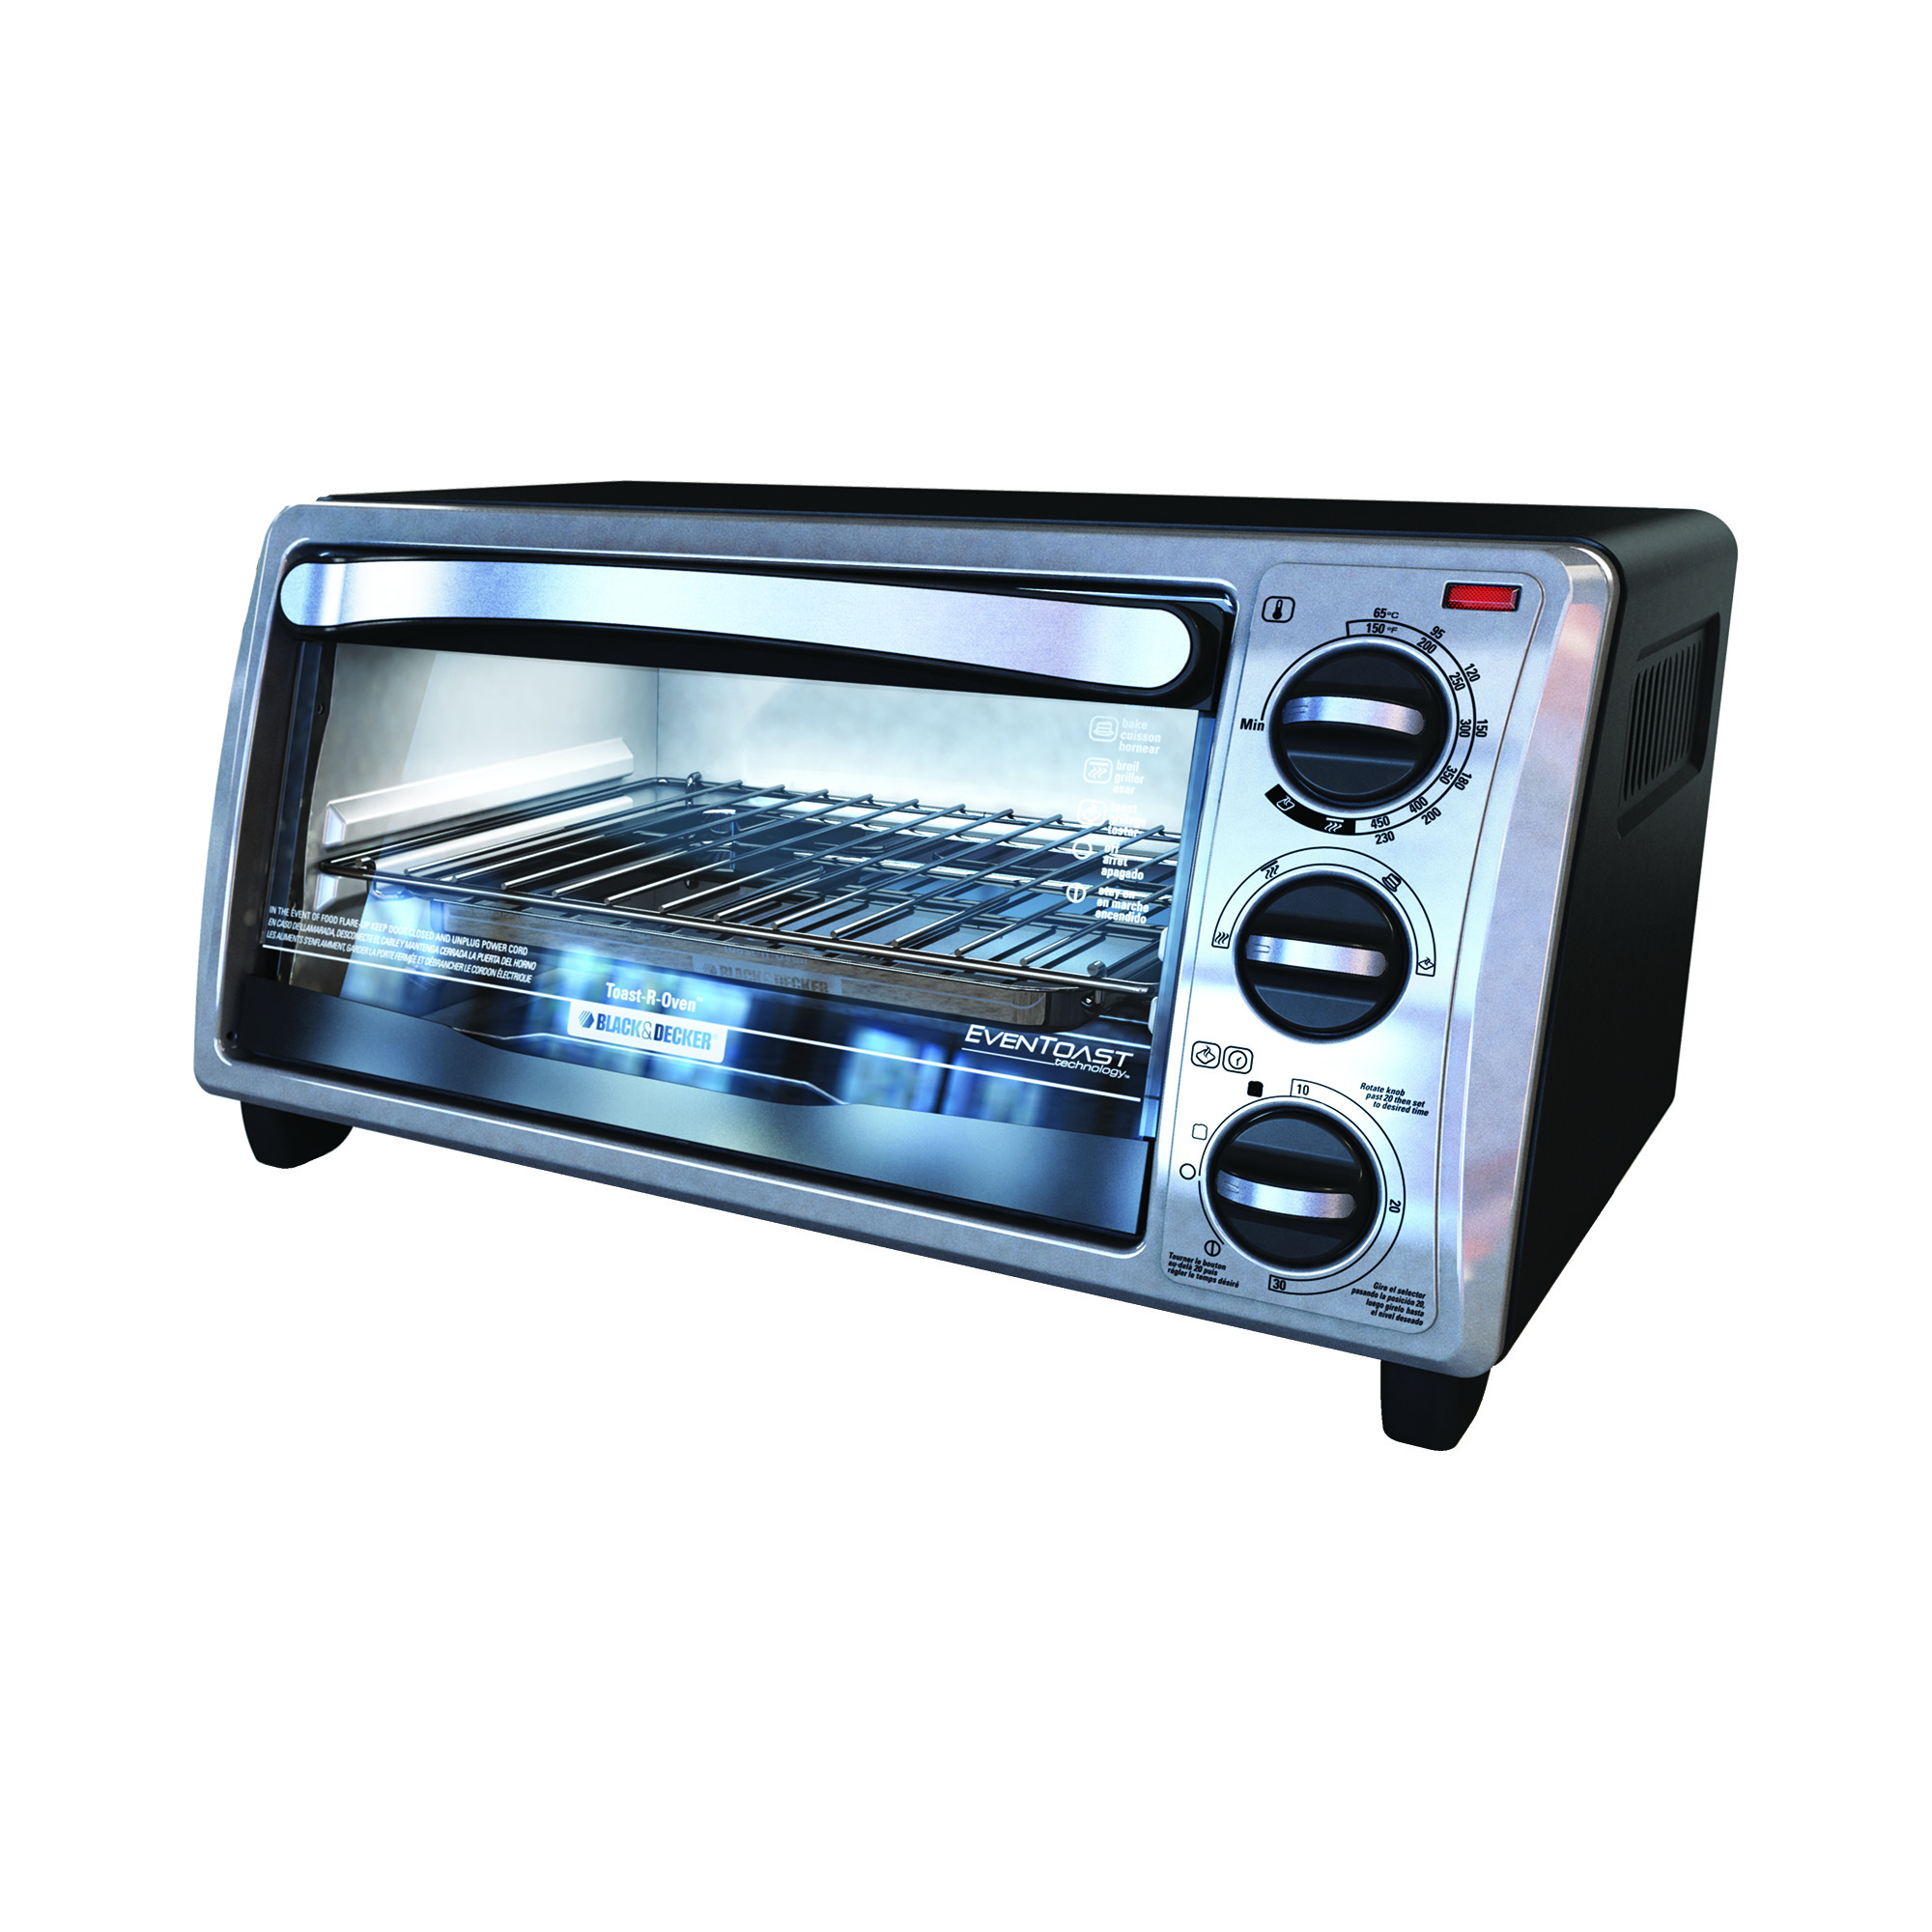 Countertop Toaster Oven : ... and Decker 4-Slice Toaster Oven Countertop Toaster Oven TO1313SBD